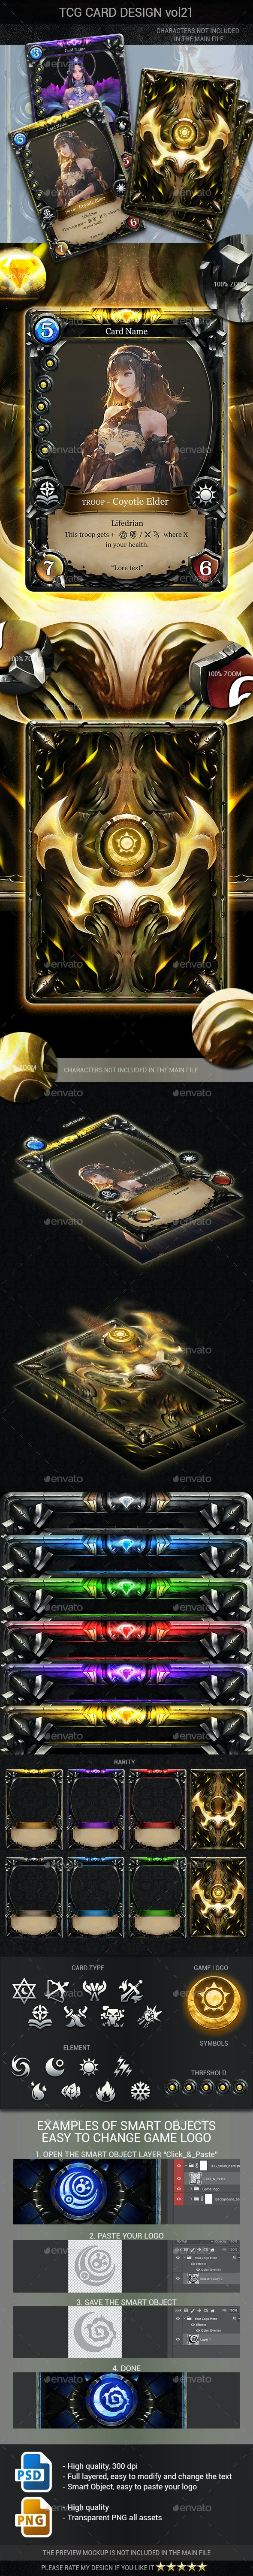 TCG Card Design Vol 21 - Miscellaneous Game Assets